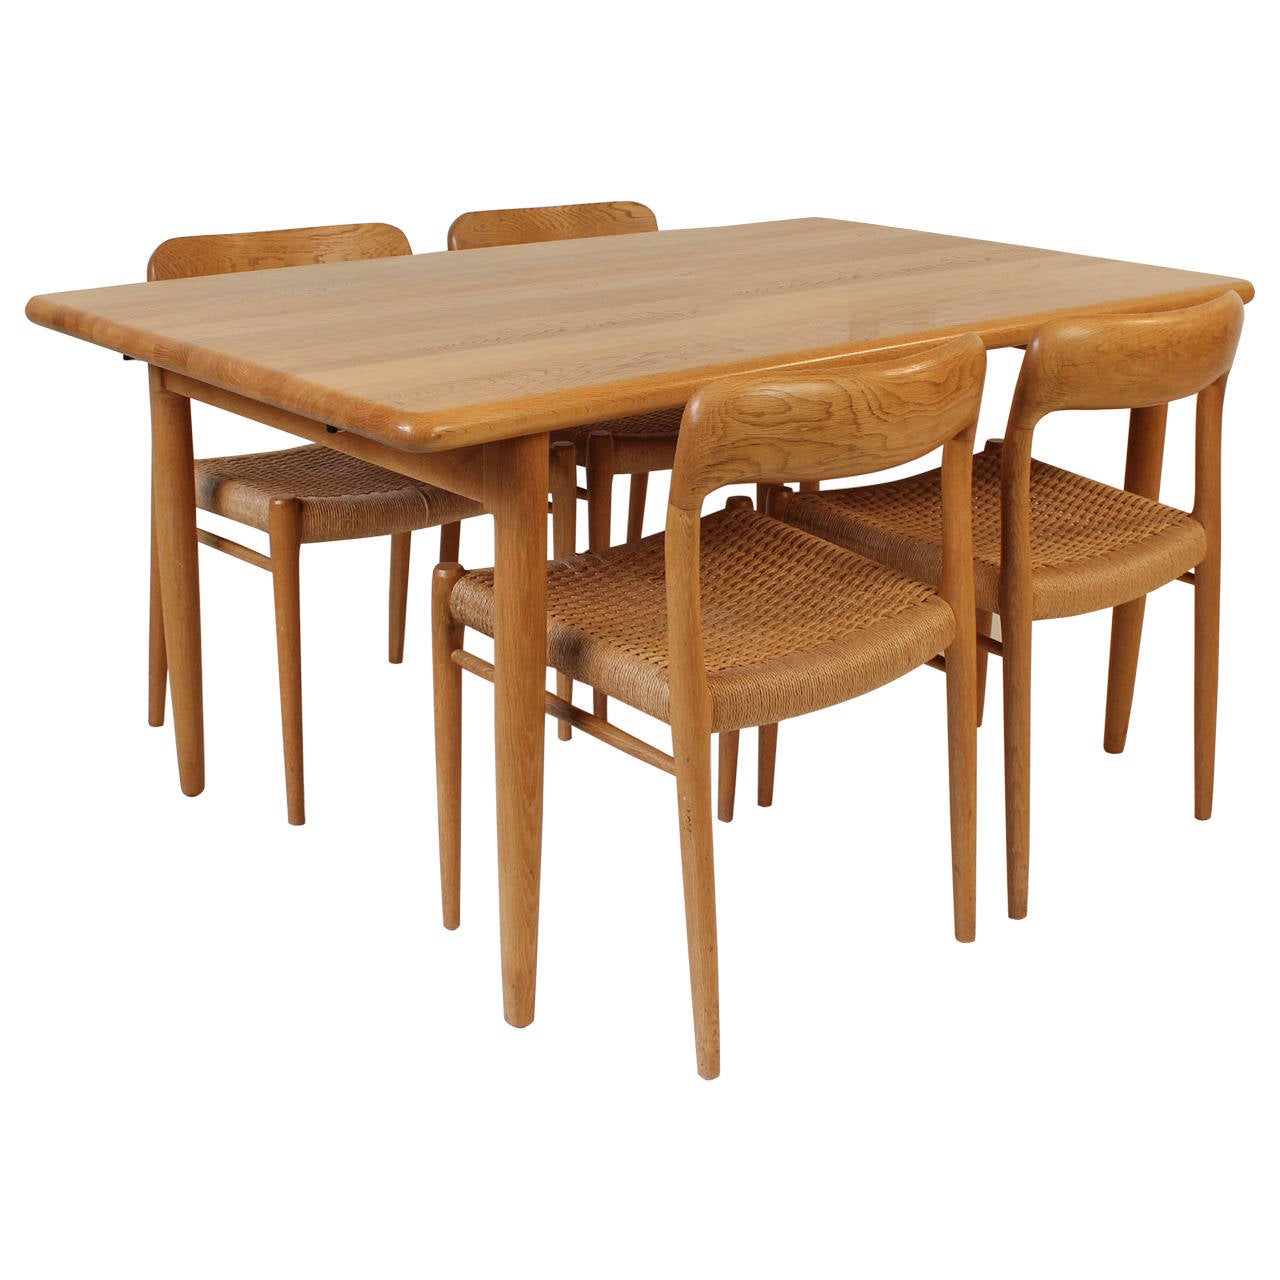 mid century modern dining room set by niels otto m ller